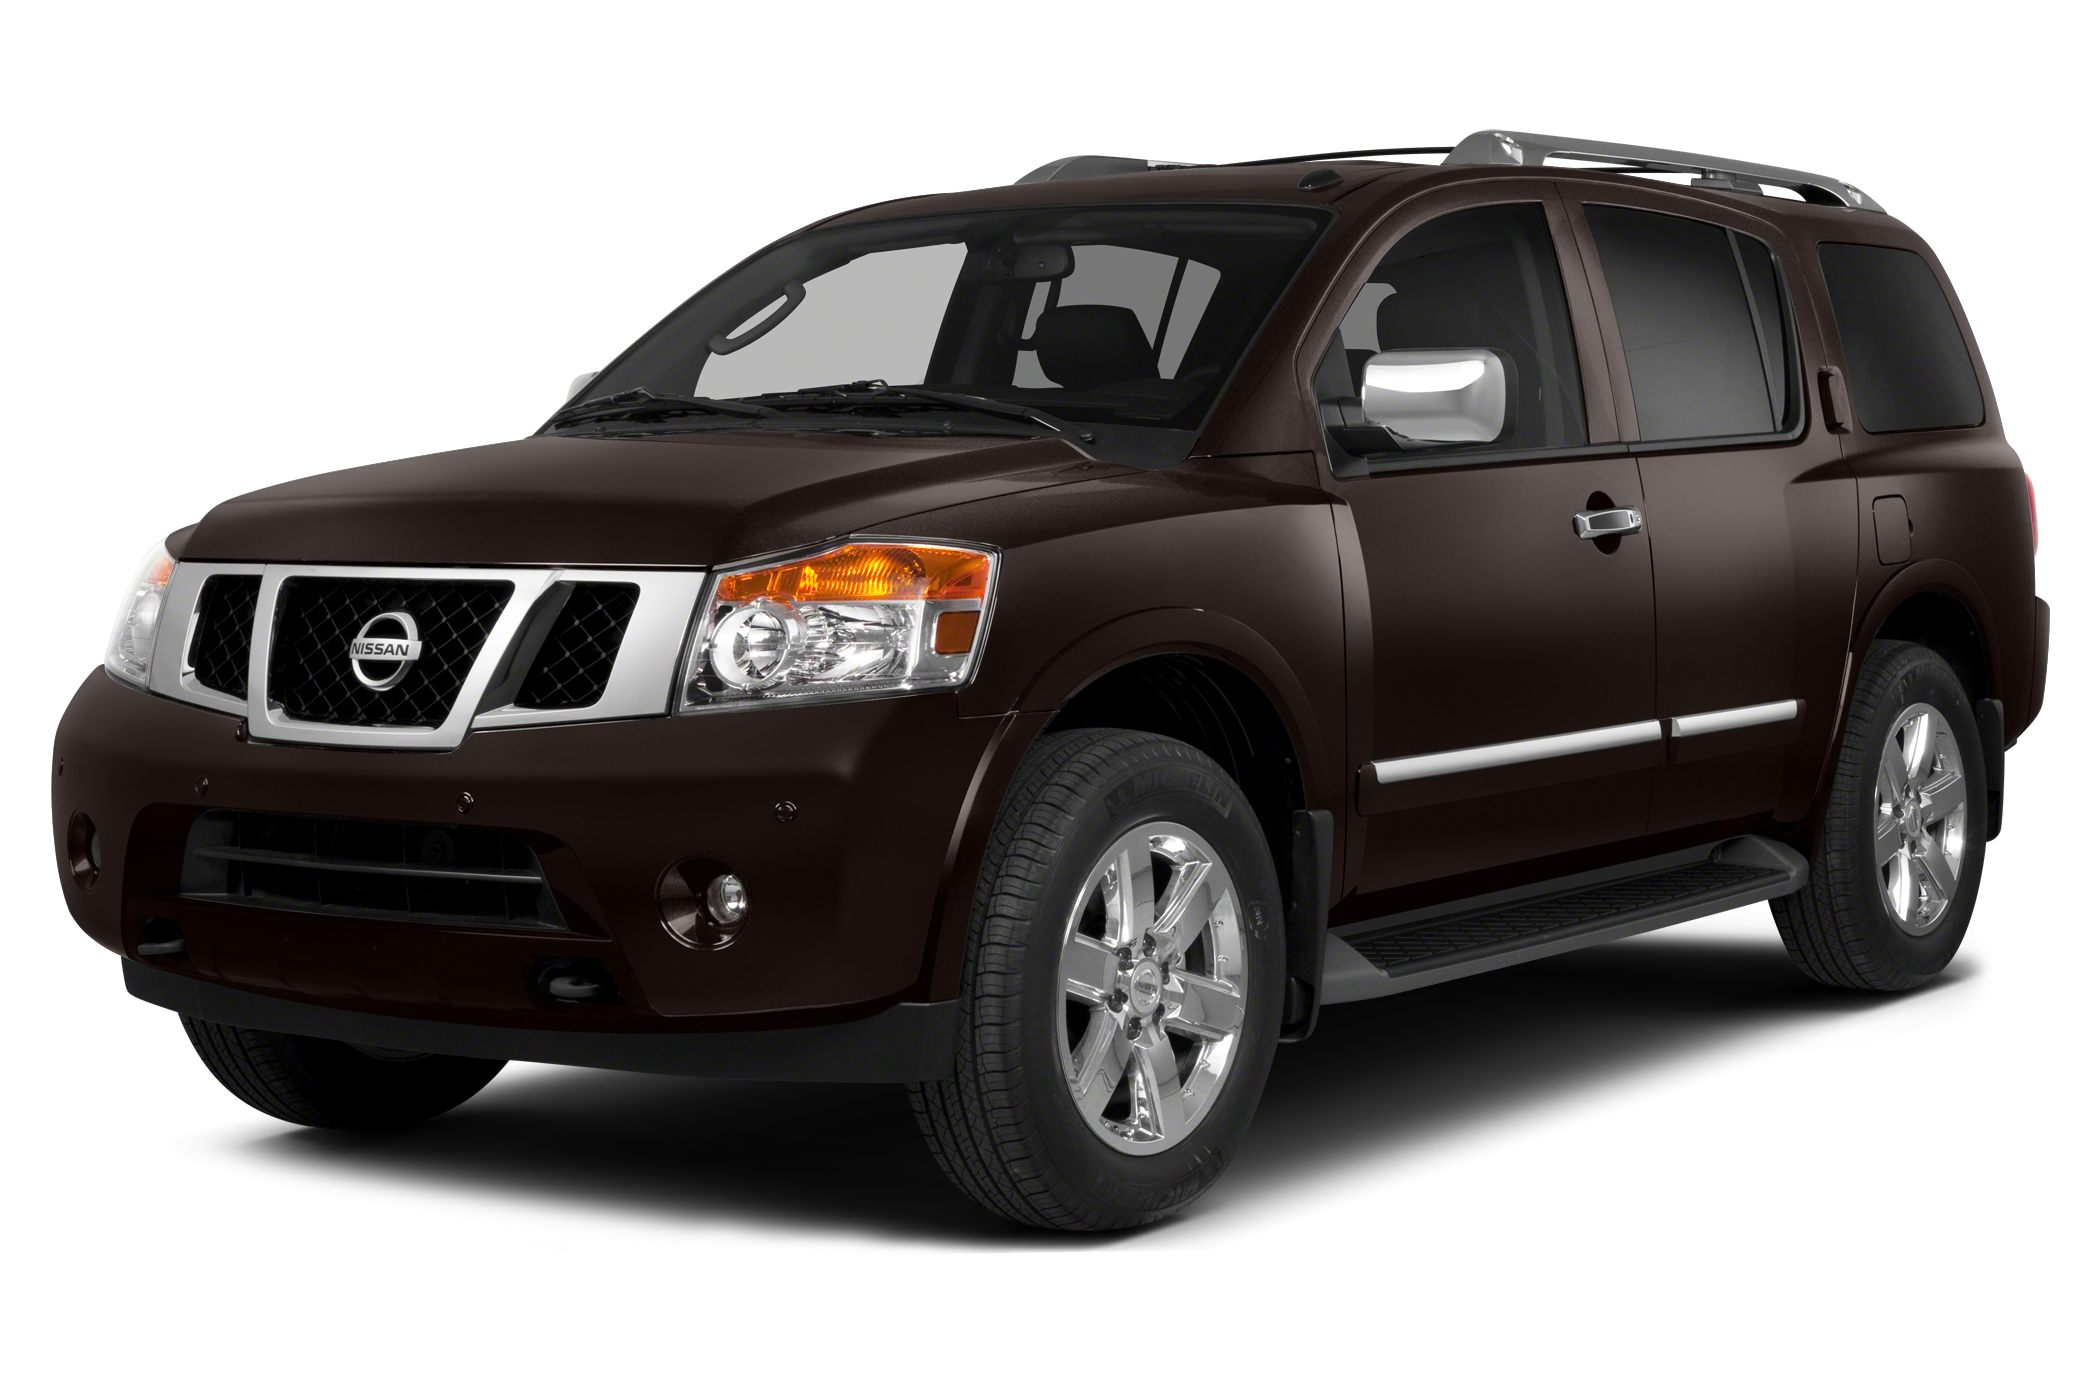 2015 Nissan Armada Platinum SUV for sale in Jefferson City for $55,240 with 10 miles